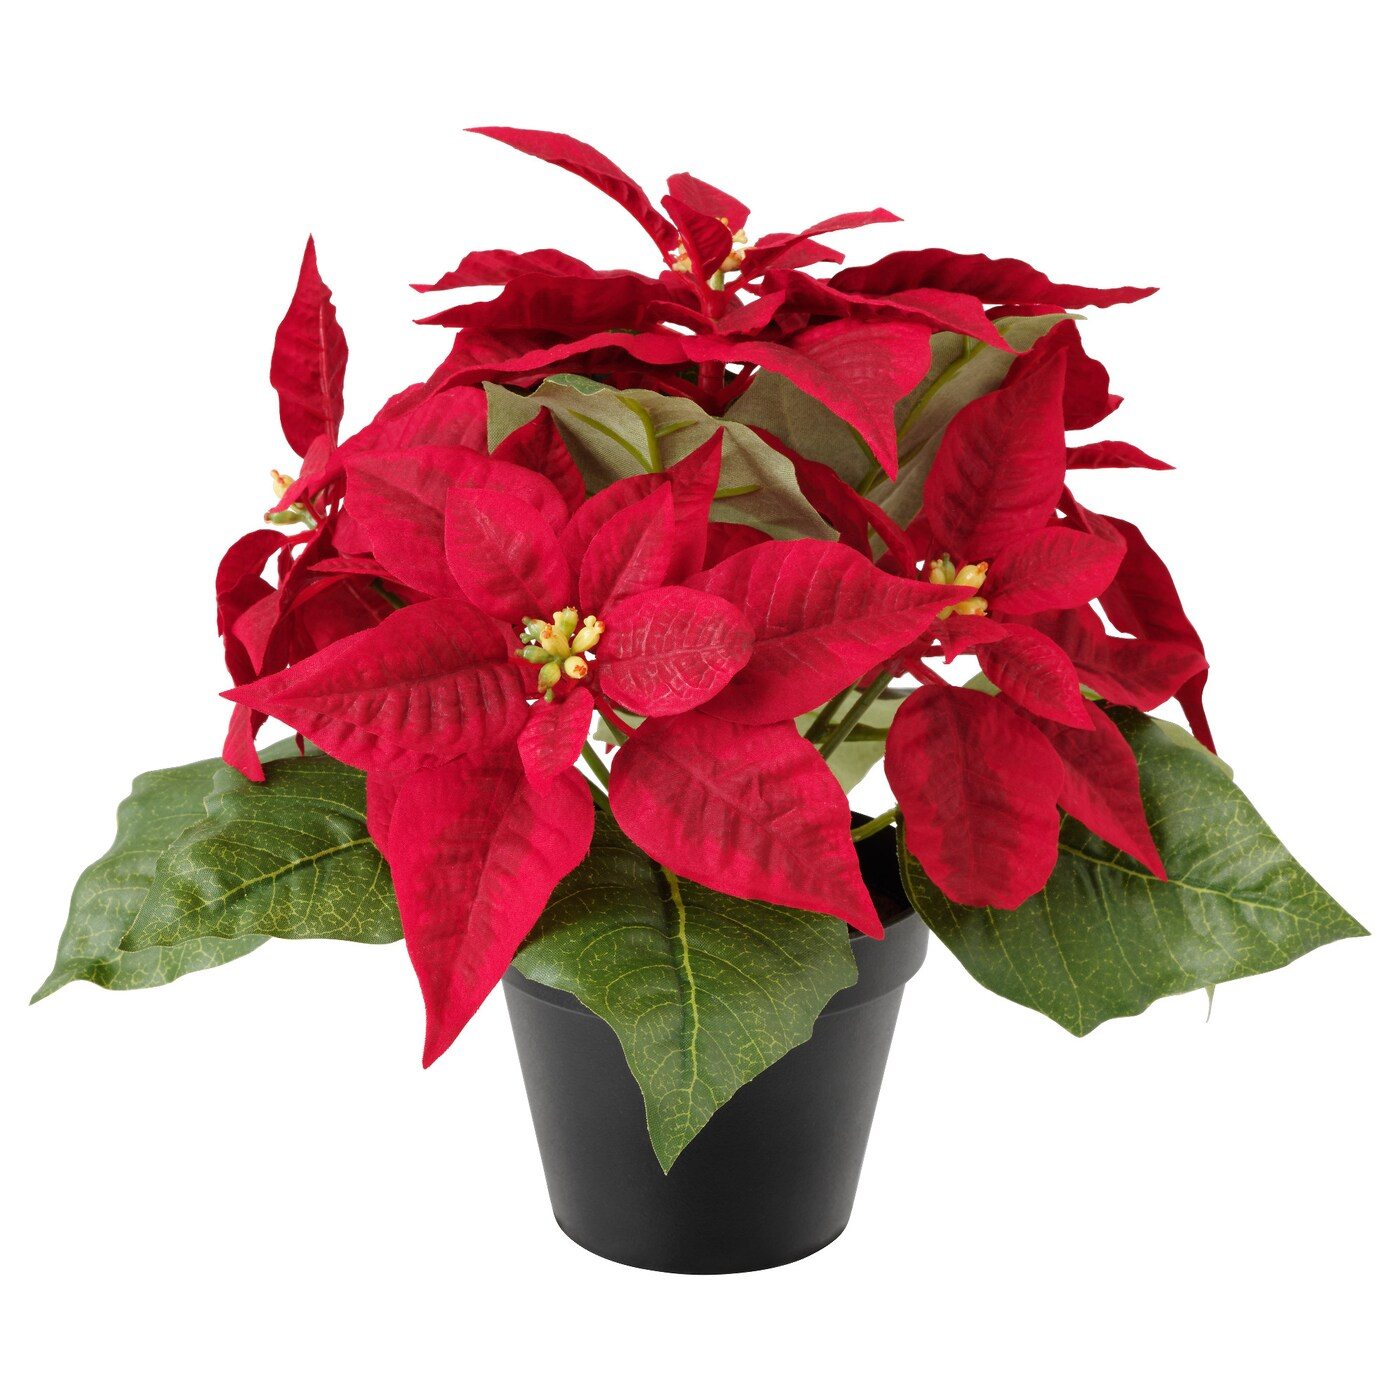 https://i1.wp.com/www.ikea.com/gb/en/images/products/fejka-artificial-potted-plant-poinsettia-red__0538278_pe651824_s5.jpg